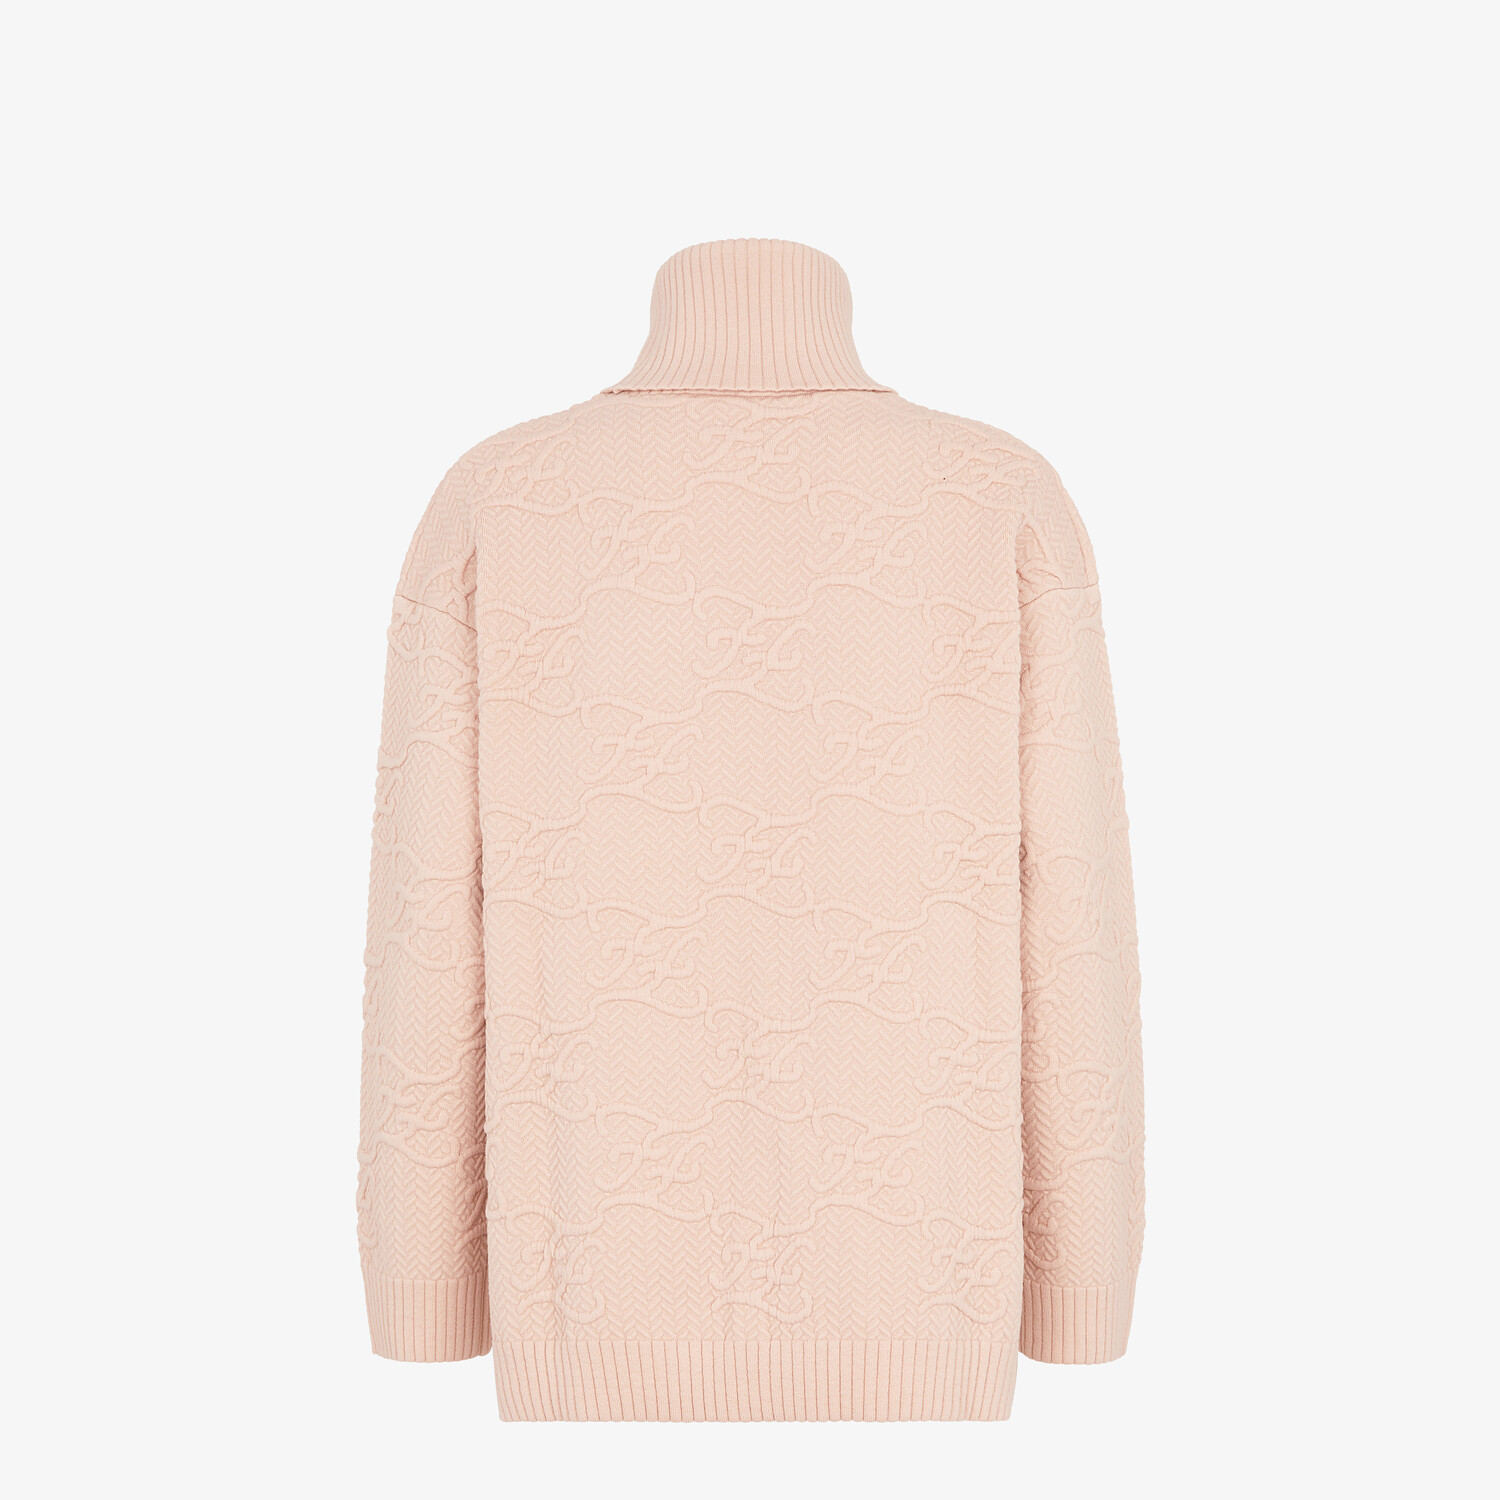 FENDI SWEATER - Pink wool and cashmere sweater - view 2 detail